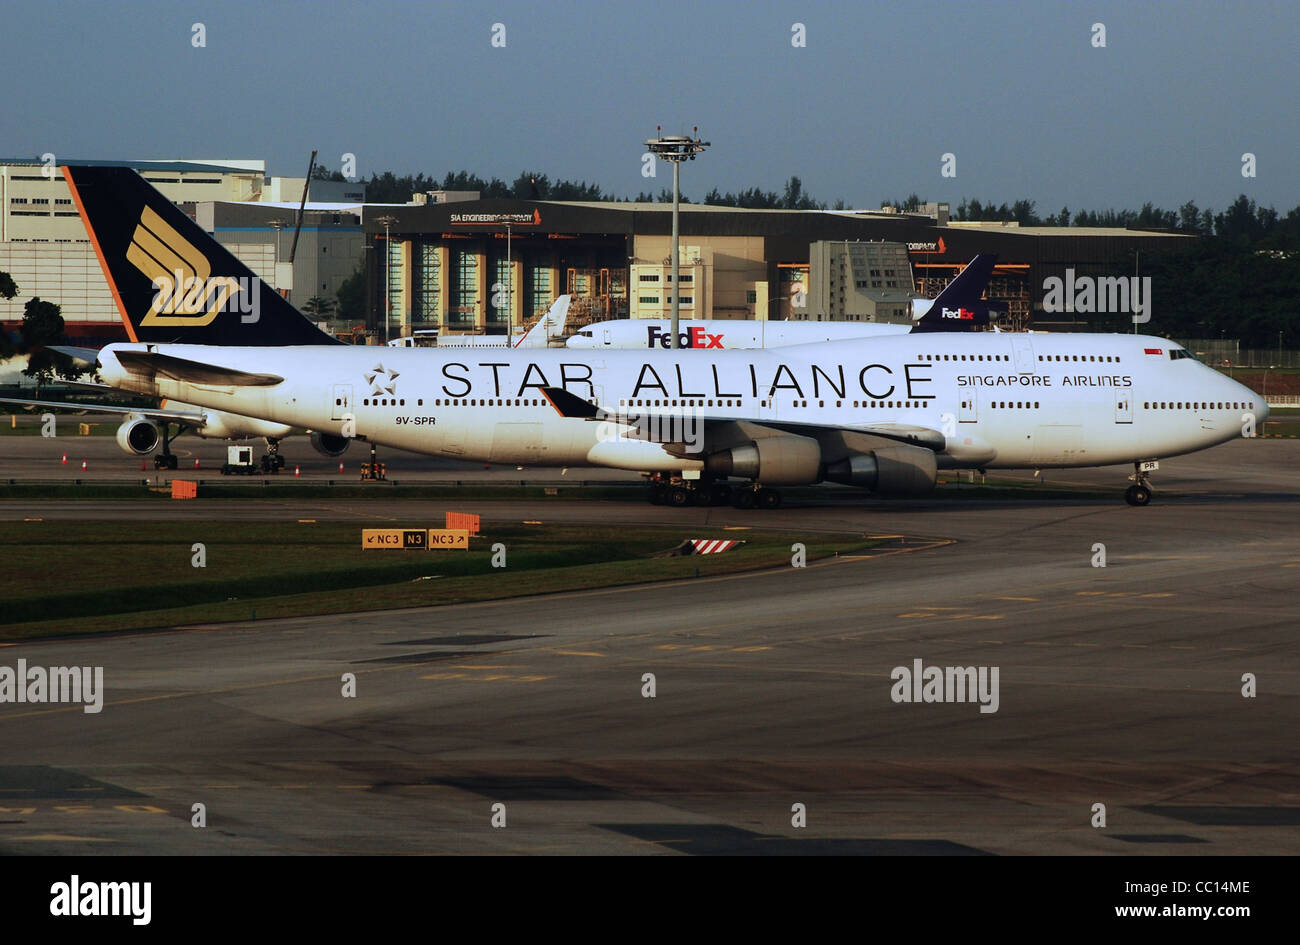 Singapore Airlines Boeing 747-4H6 (9V-SPR) taxiing at Singapore Changi Airport (SIN/WSSS). Stock Photo